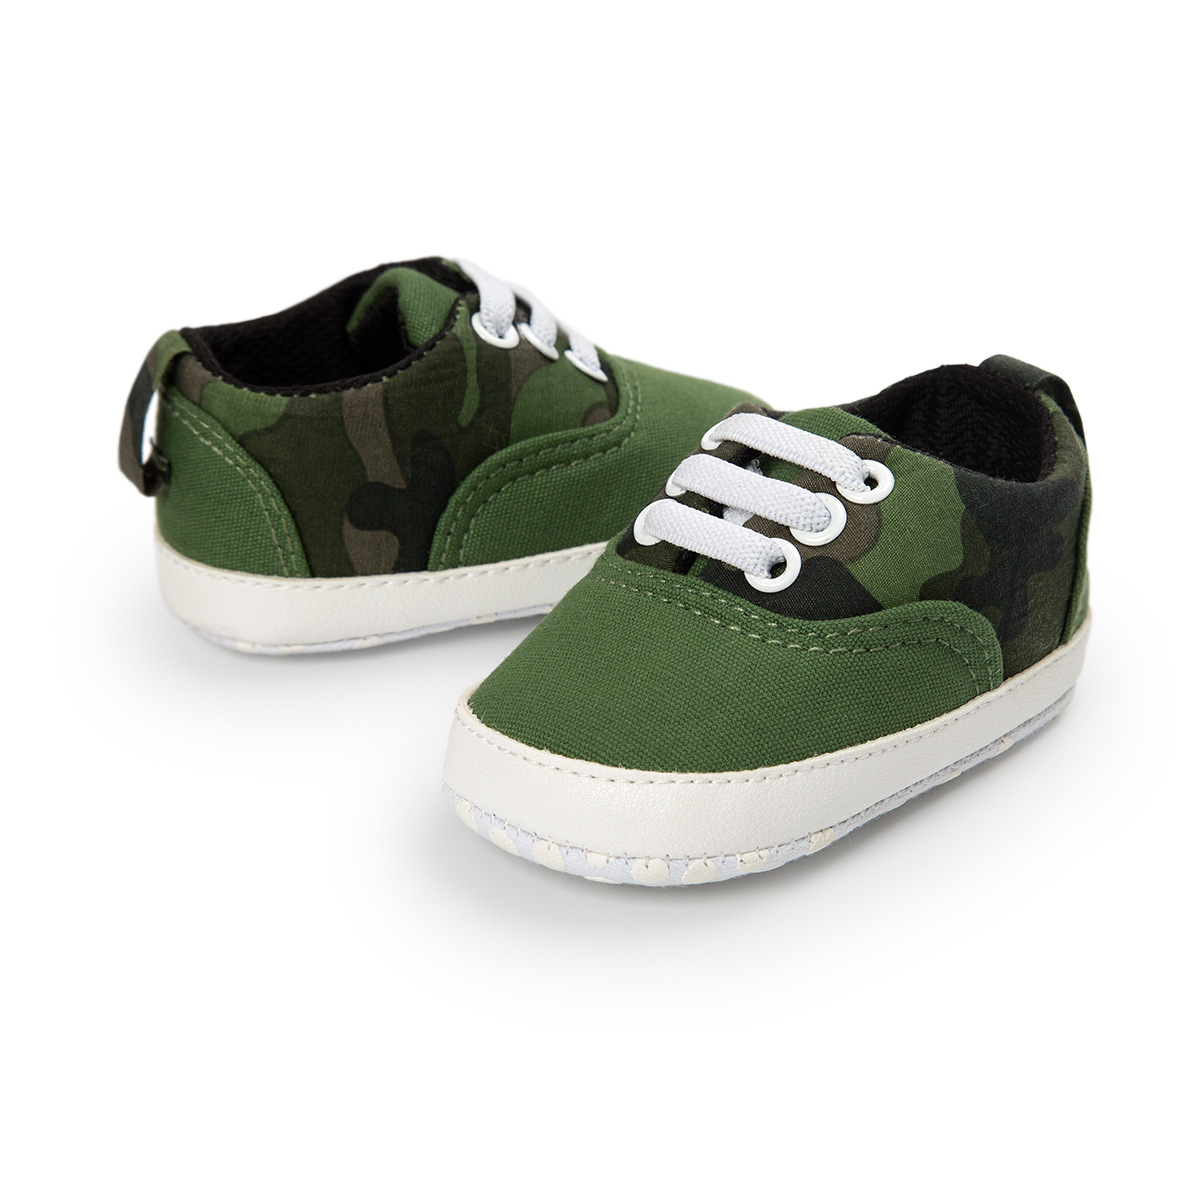 ROMIRUS Camouflage Army Green Baby Boy Shoes Spring Autumn Casual Toddler Shoes Elastic Band Soft Bottom Children's Shoes